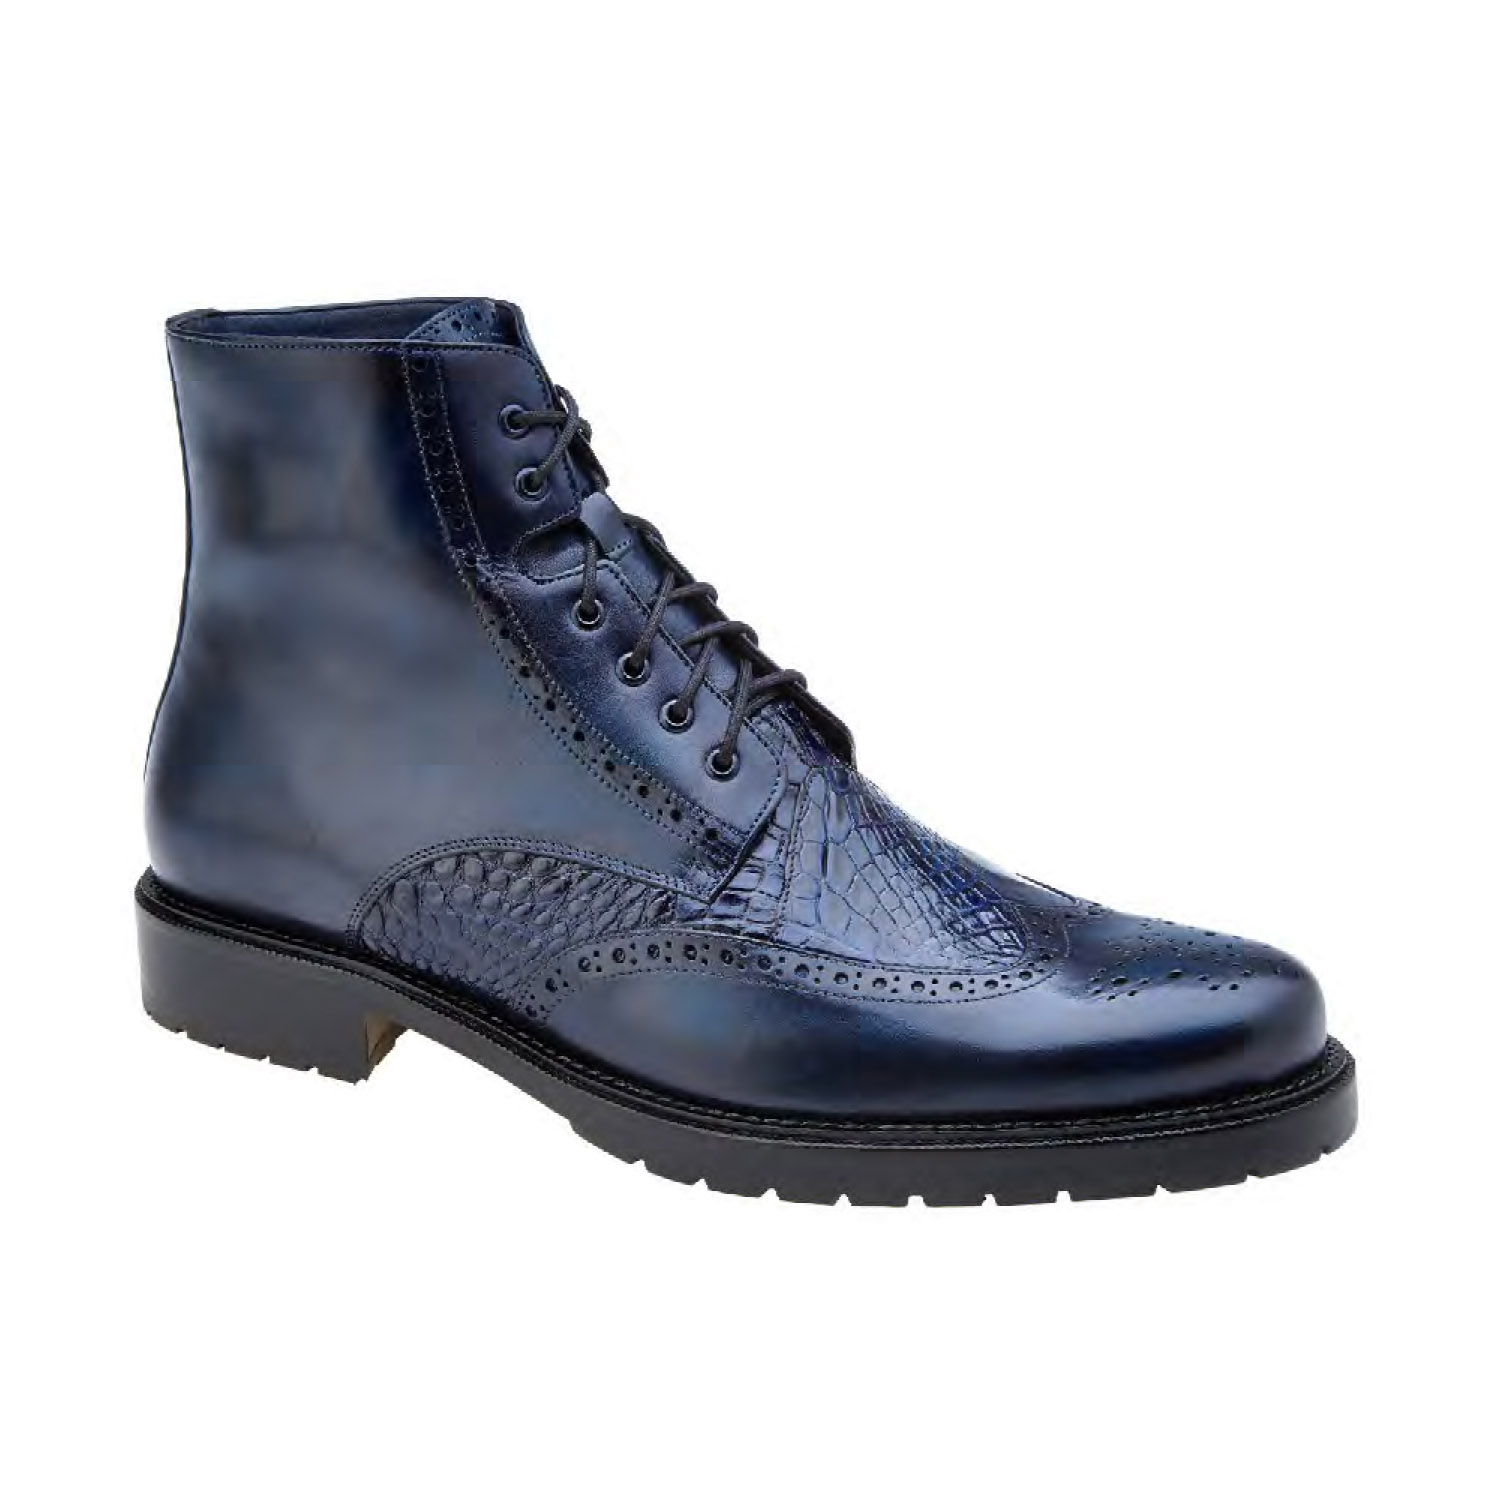 425704c1a2608 Belvedere Vito Genuine Alligator Italian Leather-Navy